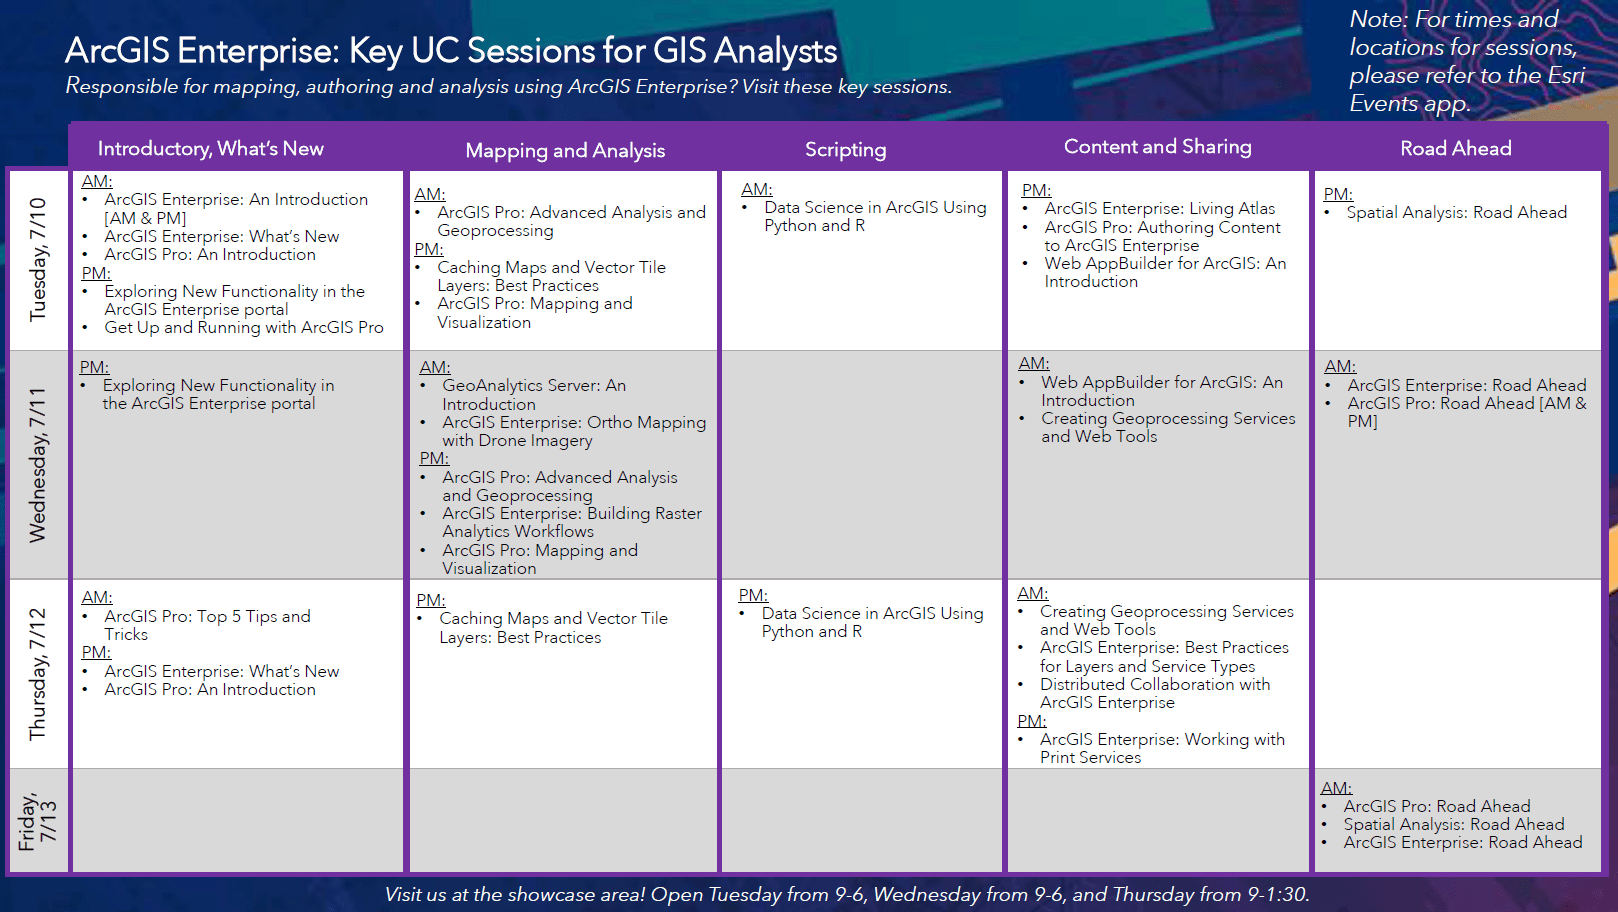 ArcGIS Enterprise sessions recommended for GIS Analysts. For the full pdf, visit the link included here in the blog.